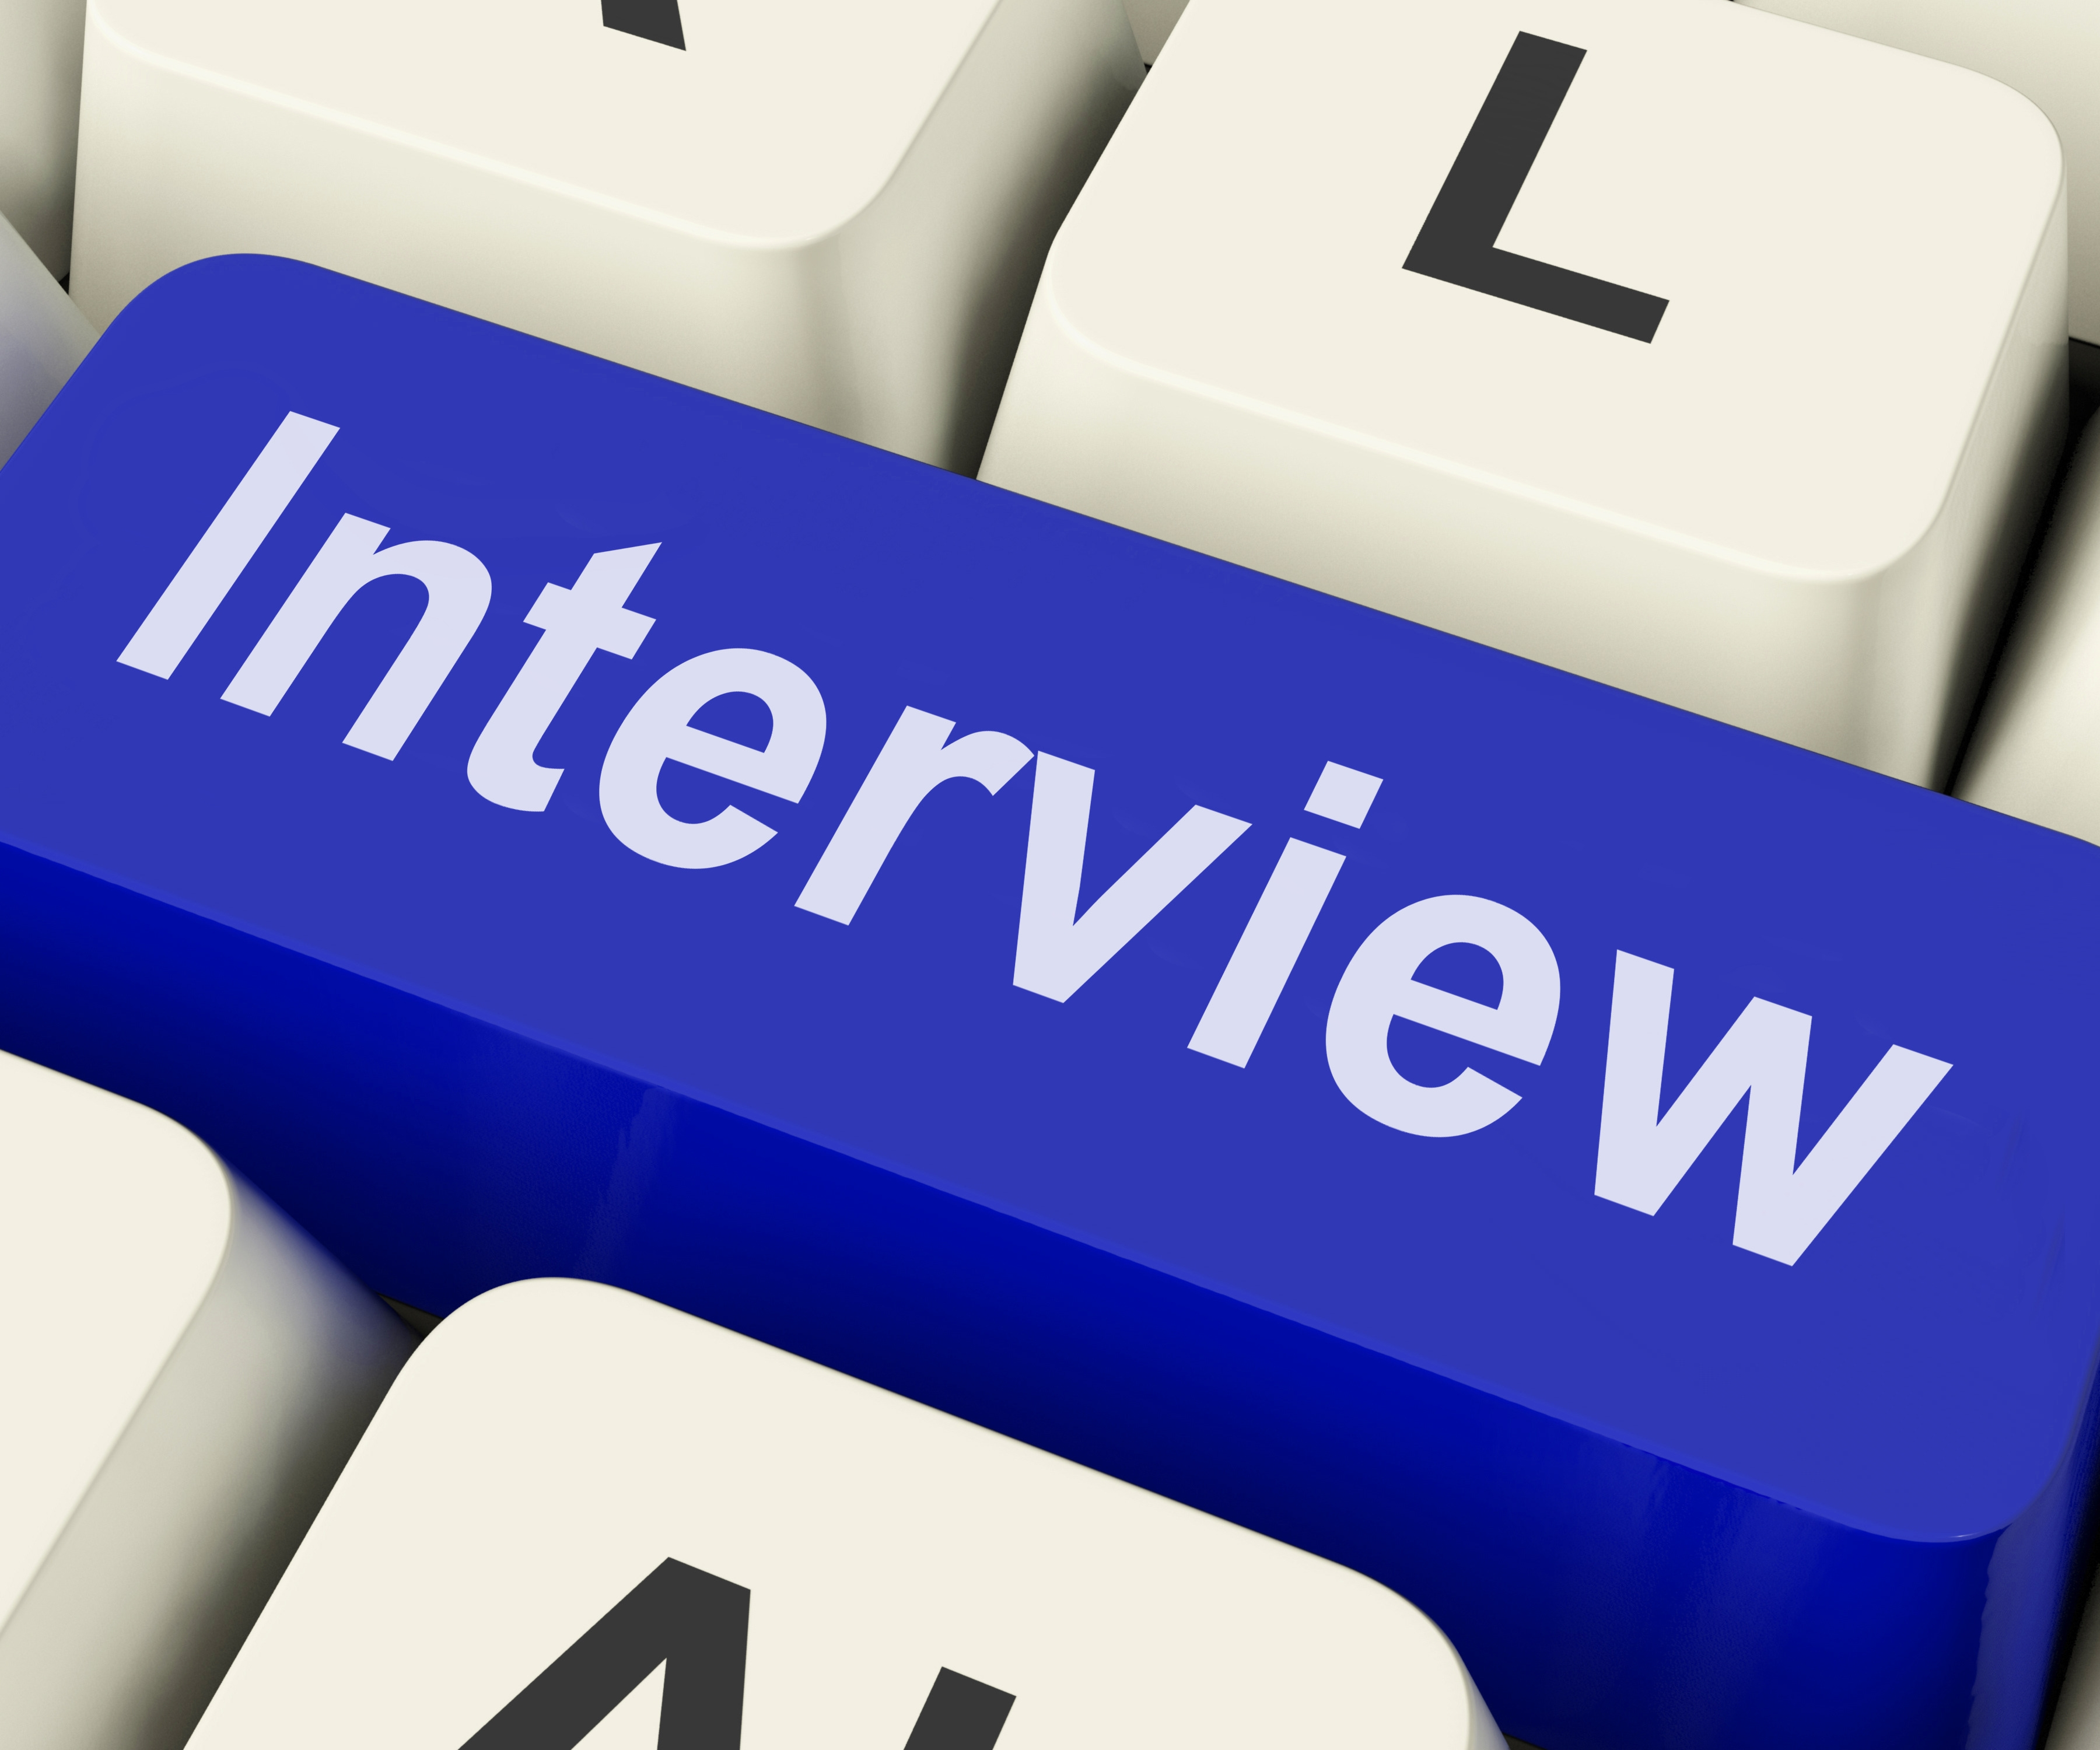 media appearances resume sample customer service resume media appearances resume boardroom resumes executive resume writers an introduction to informational interviews